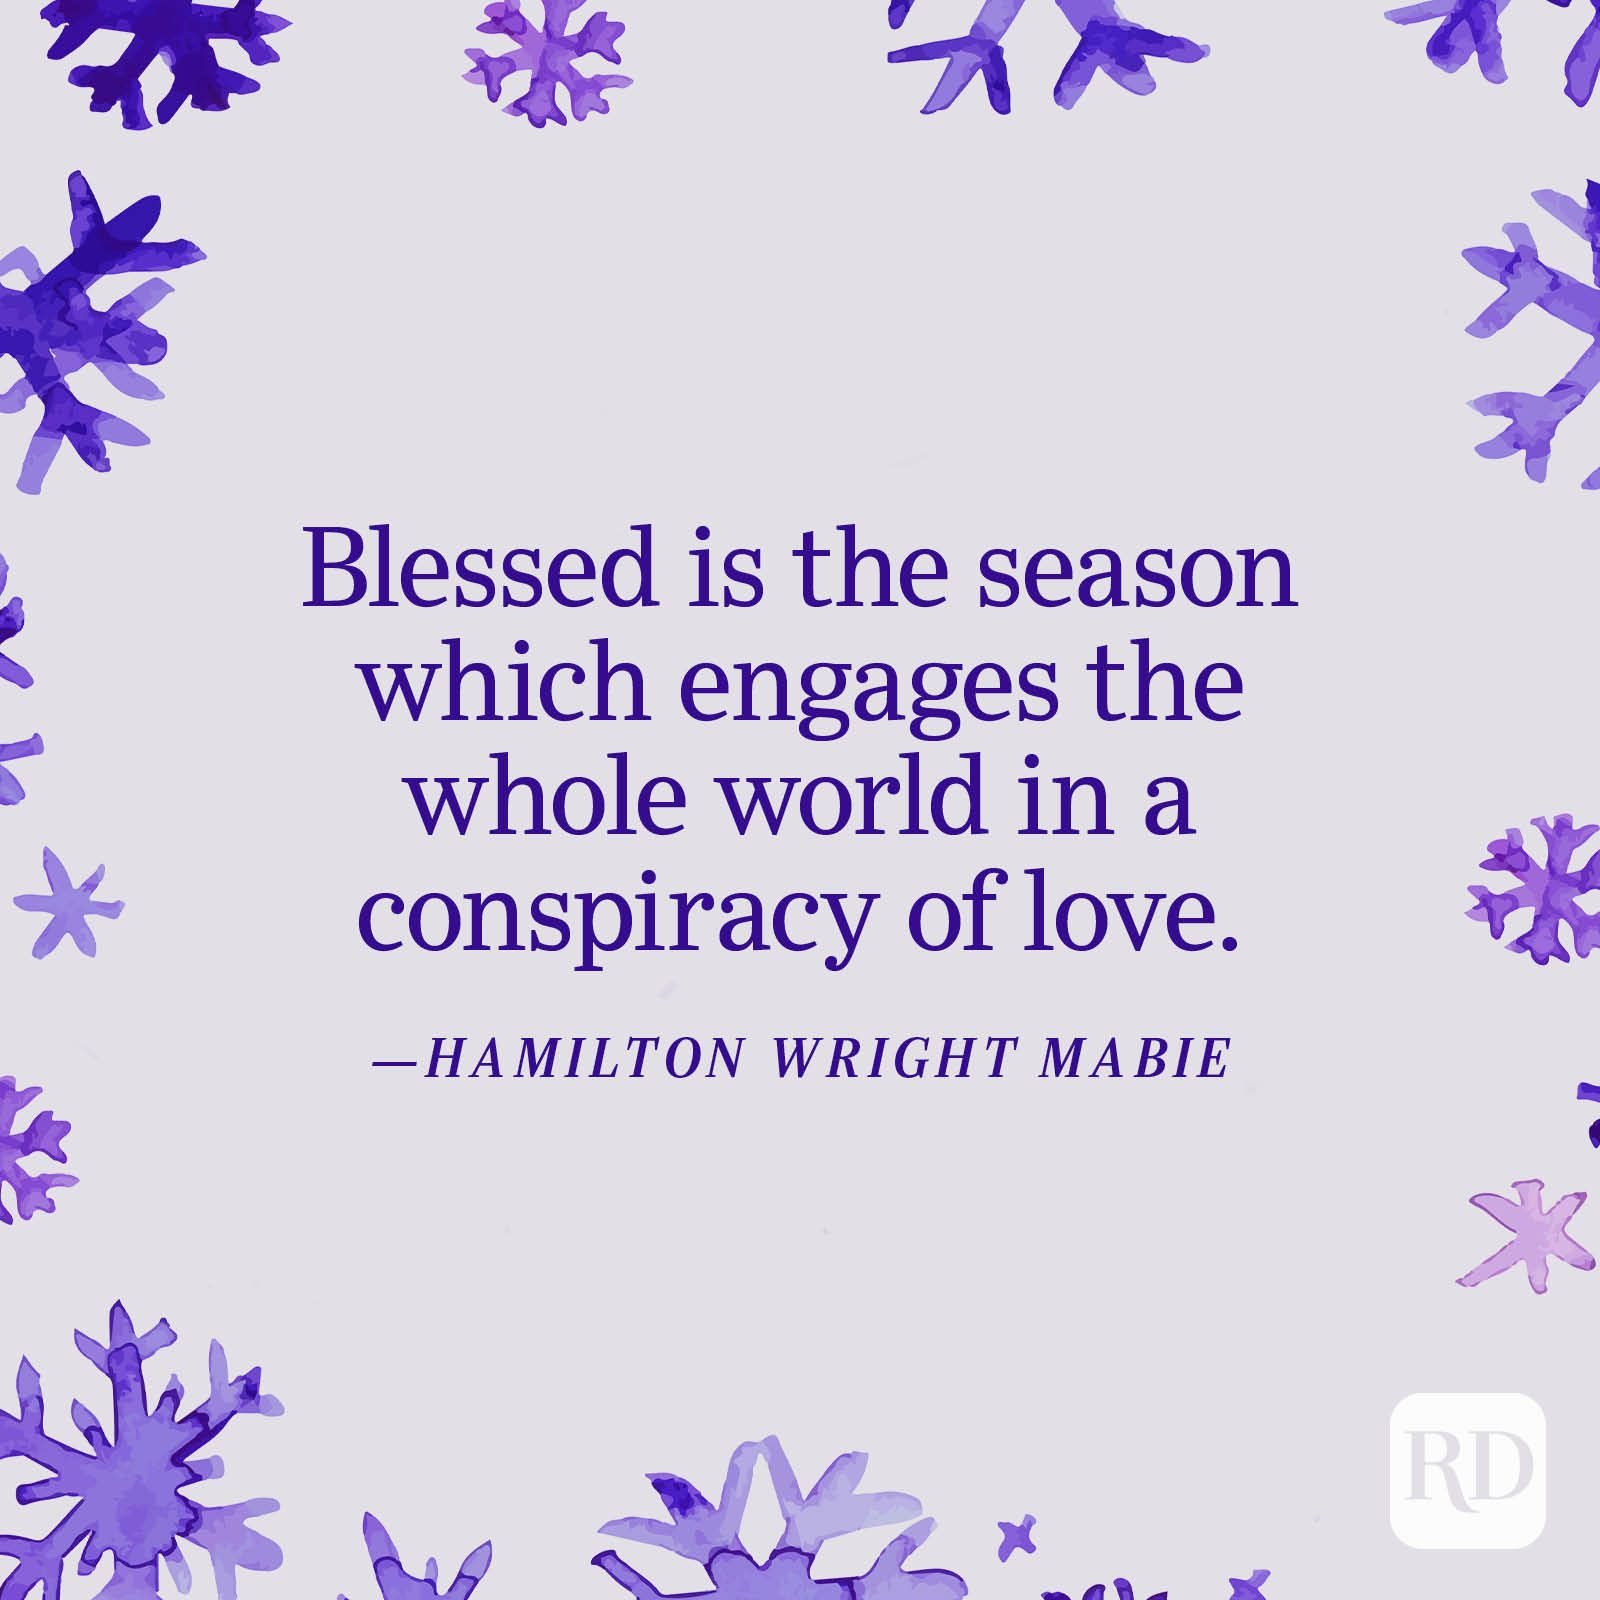 """""""Blessed is the season which engages the whole world in a conspiracy of love."""" —Hamilton Wright Mabie"""